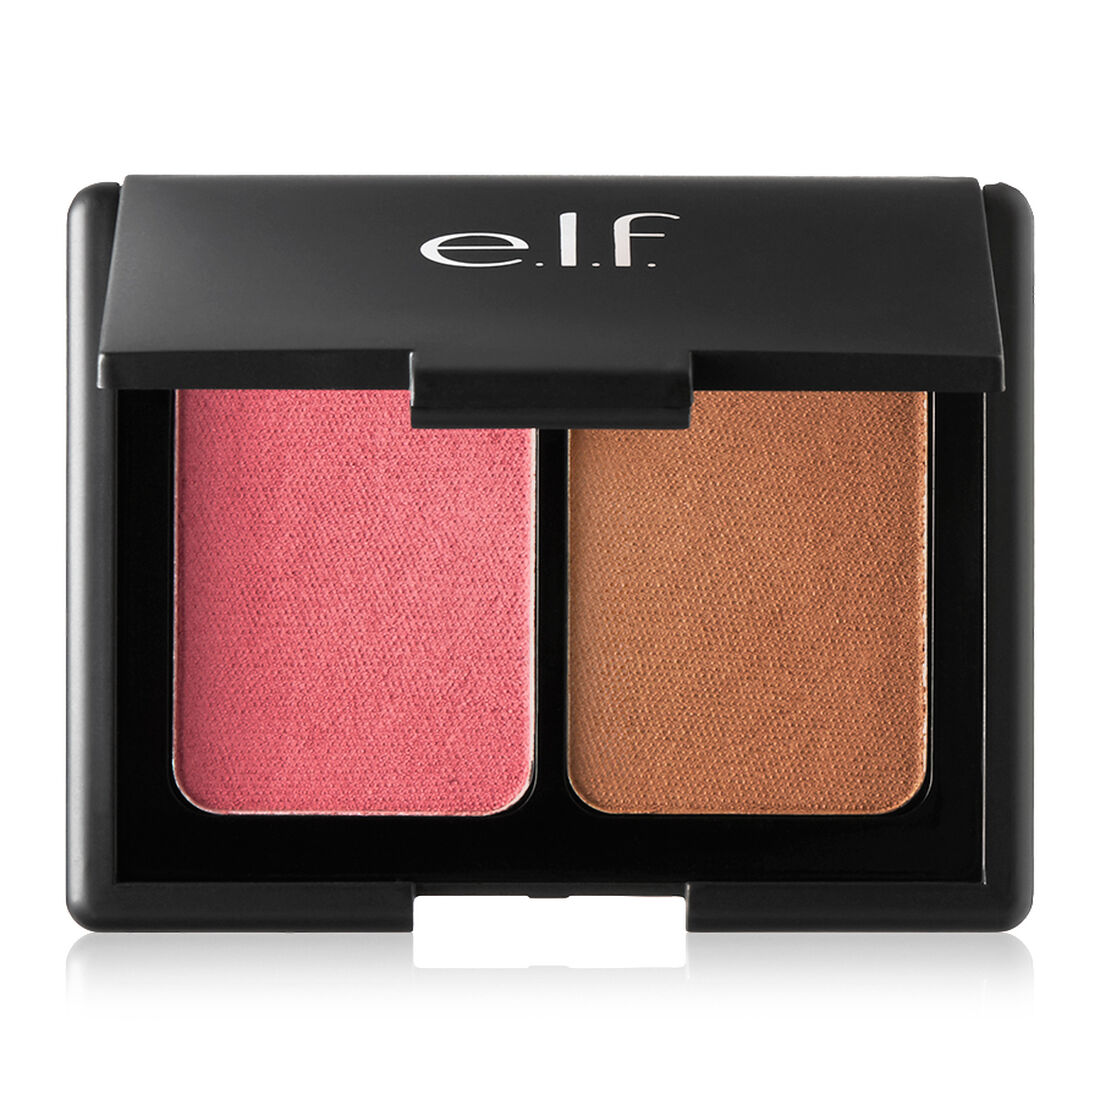 E.l.f Cosmetics - Aqua Beauty Blush & Bronzer